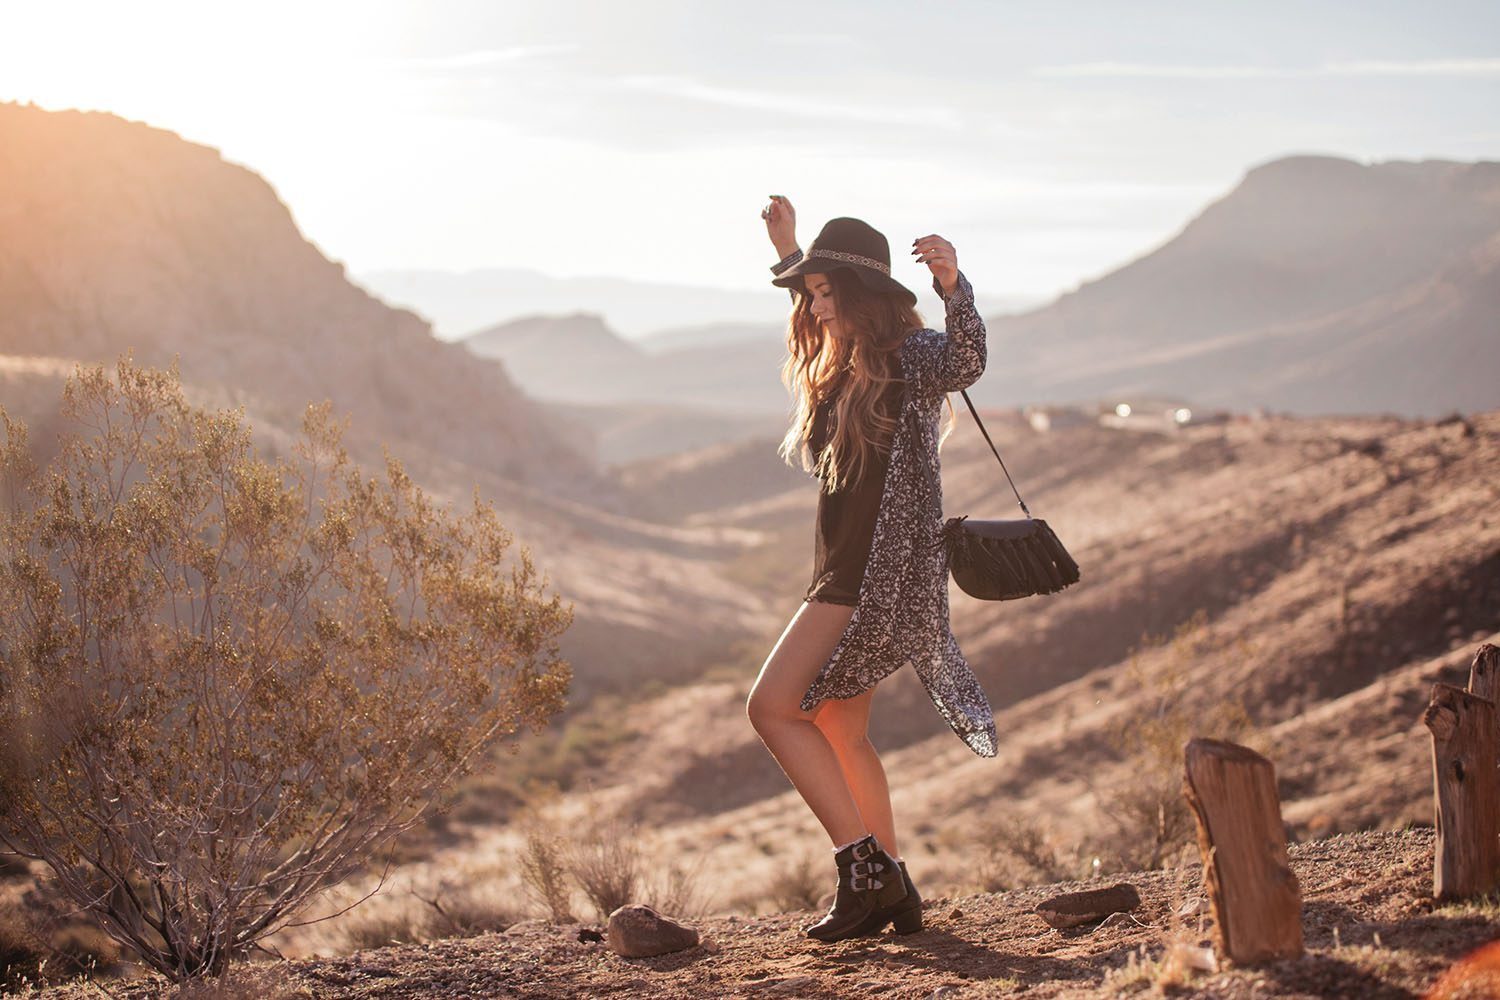 Boho Outfit in Red Rock Canyon Sunrise - Dress, Boots, Hat & Fringe Bag